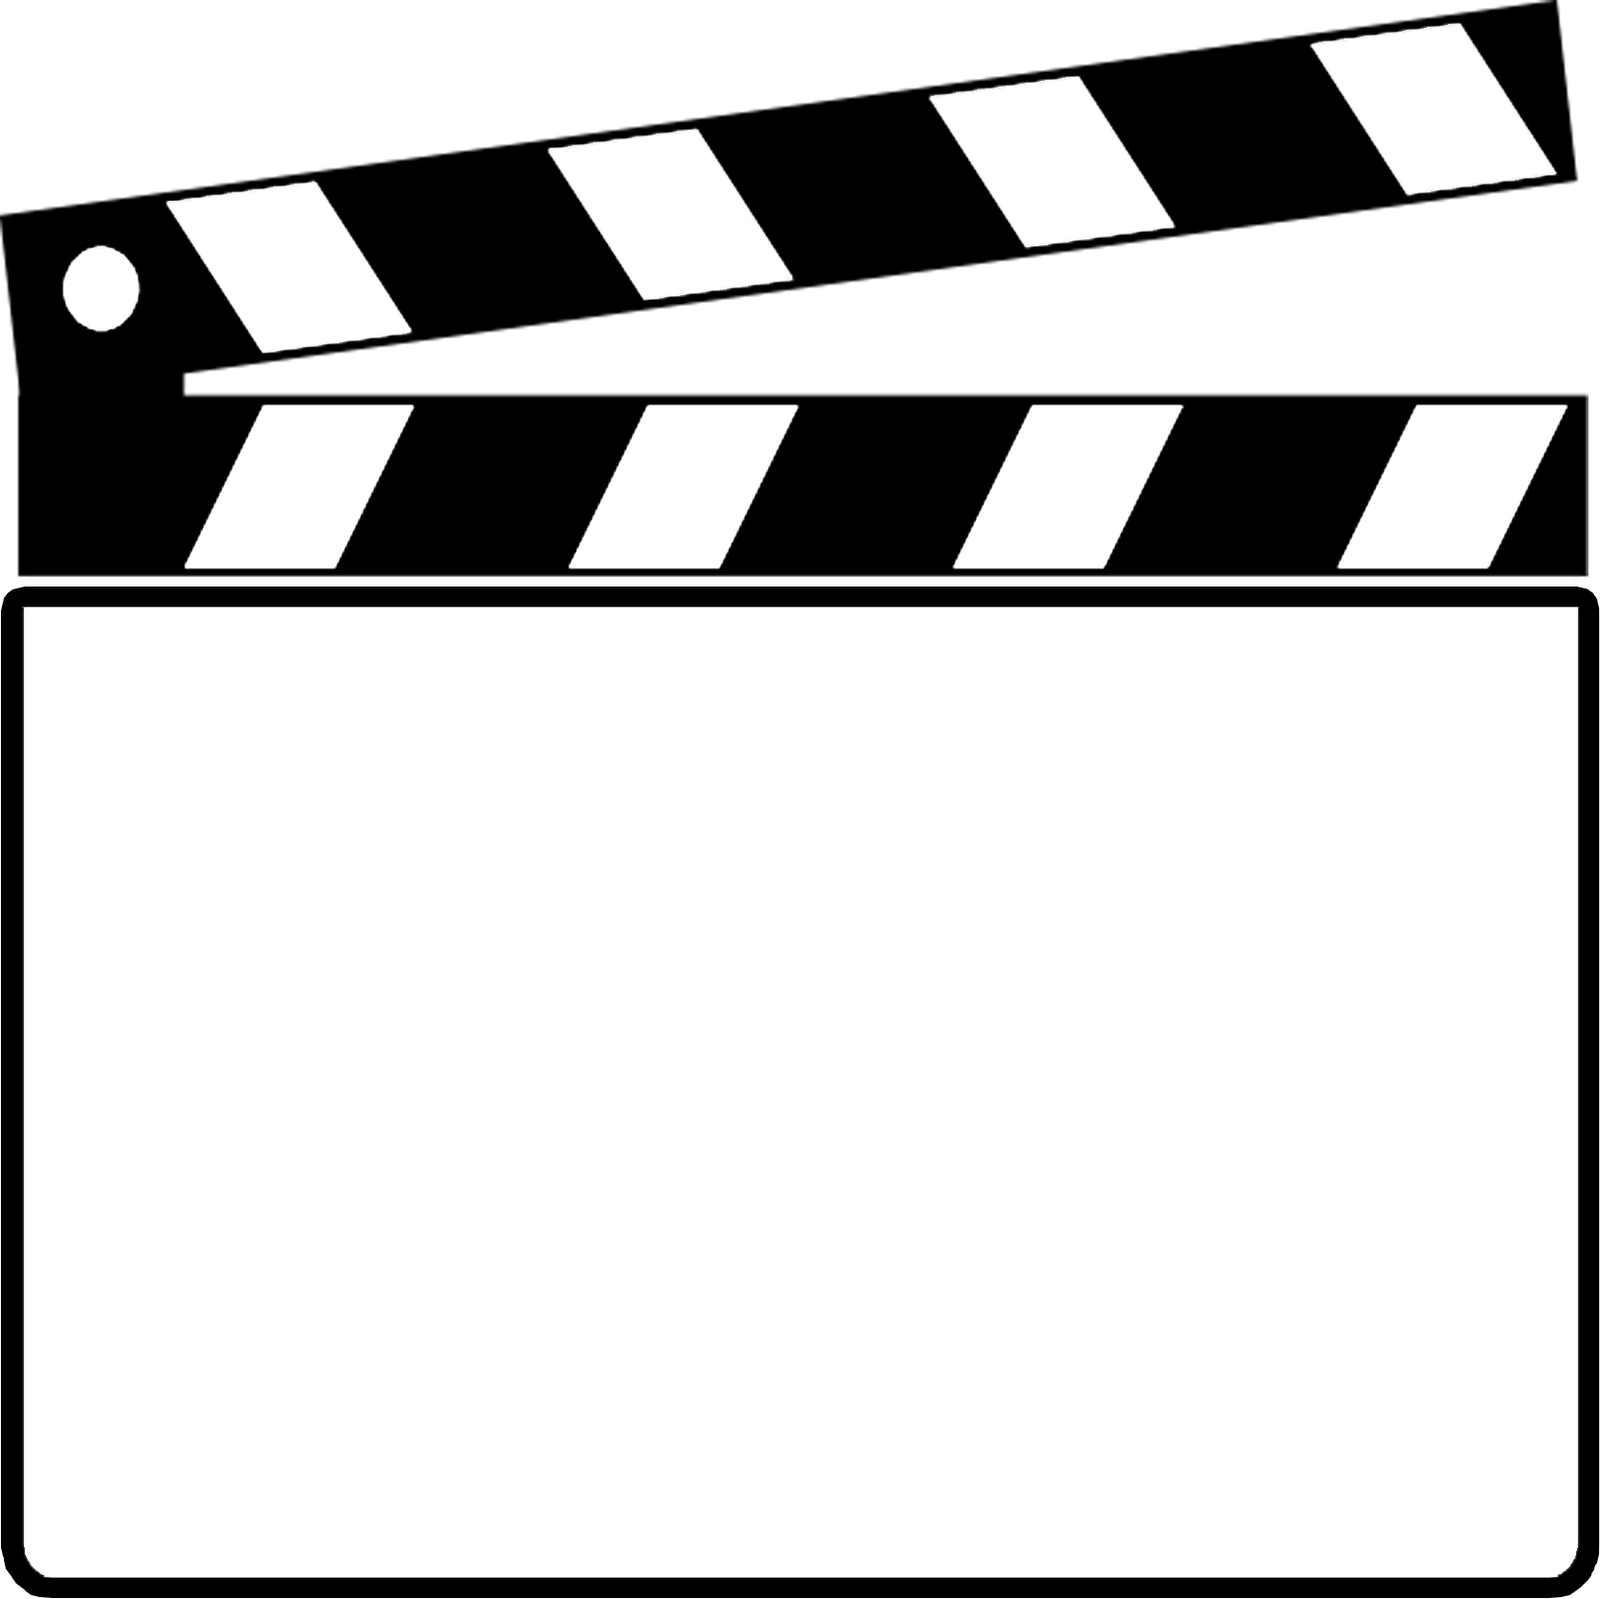 Hollywood clipart clap board, Hollywood clap board Transparent FREE.